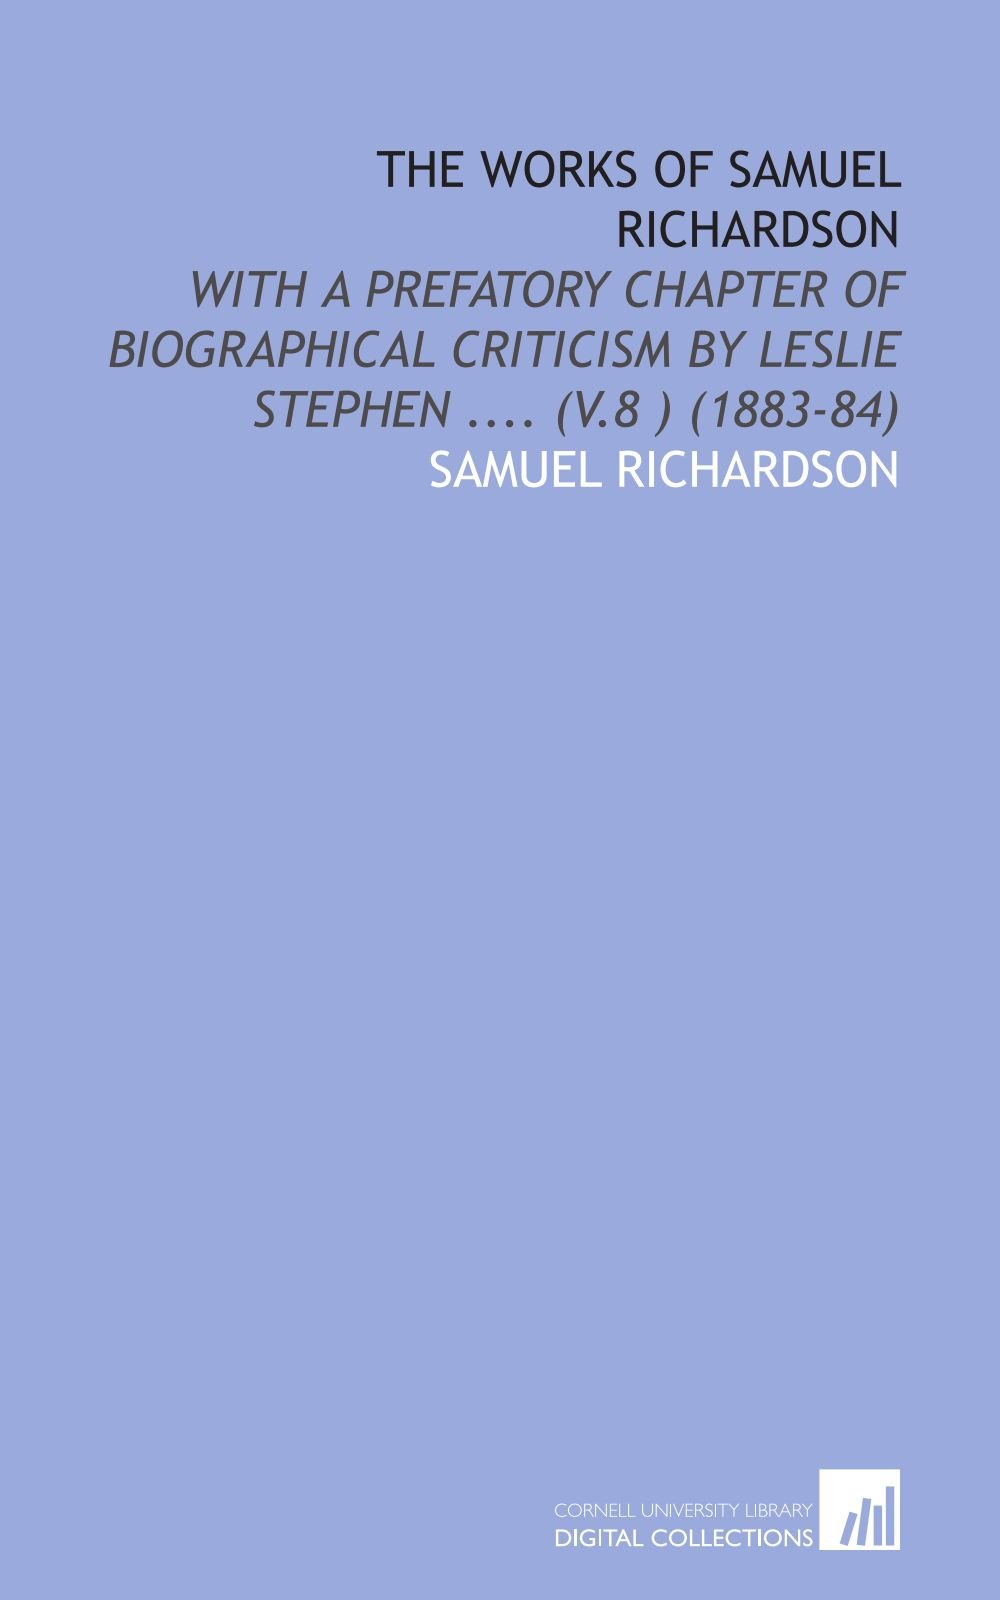 The Works of Samuel Richardson: With a Prefatory Chapter of Biographical Criticism by Leslie Stephen .... (V.8 ) (1883-84) PDF Text fb2 book